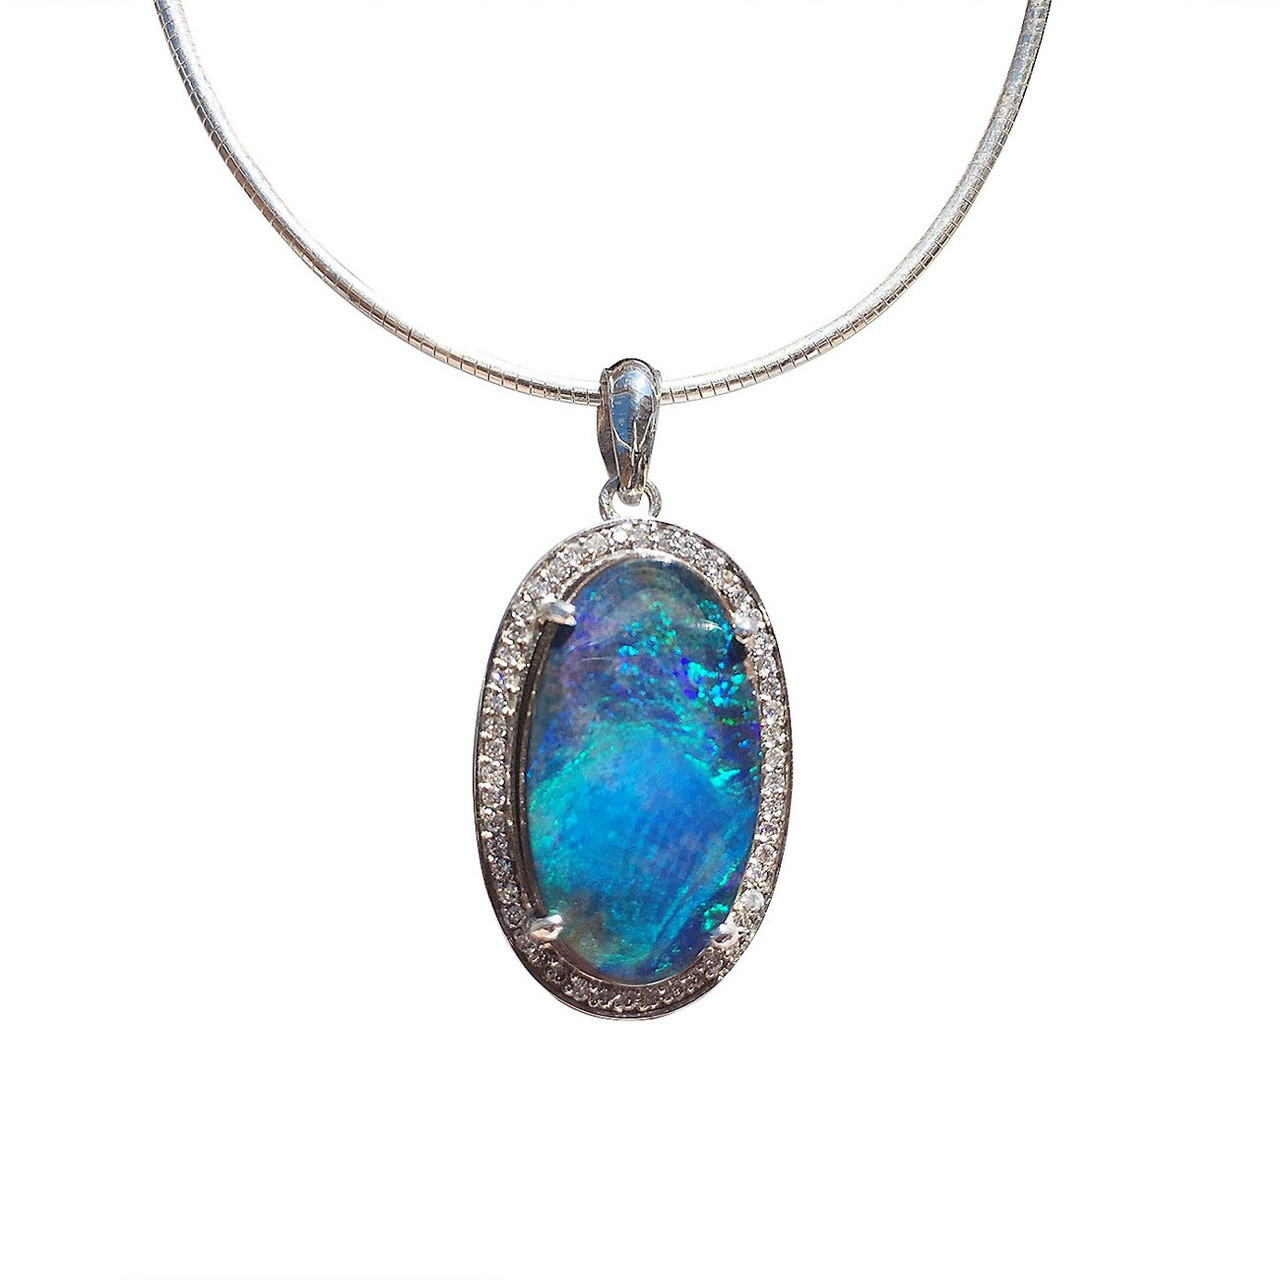 you necklace featured opals pin is opal like black the handmade do